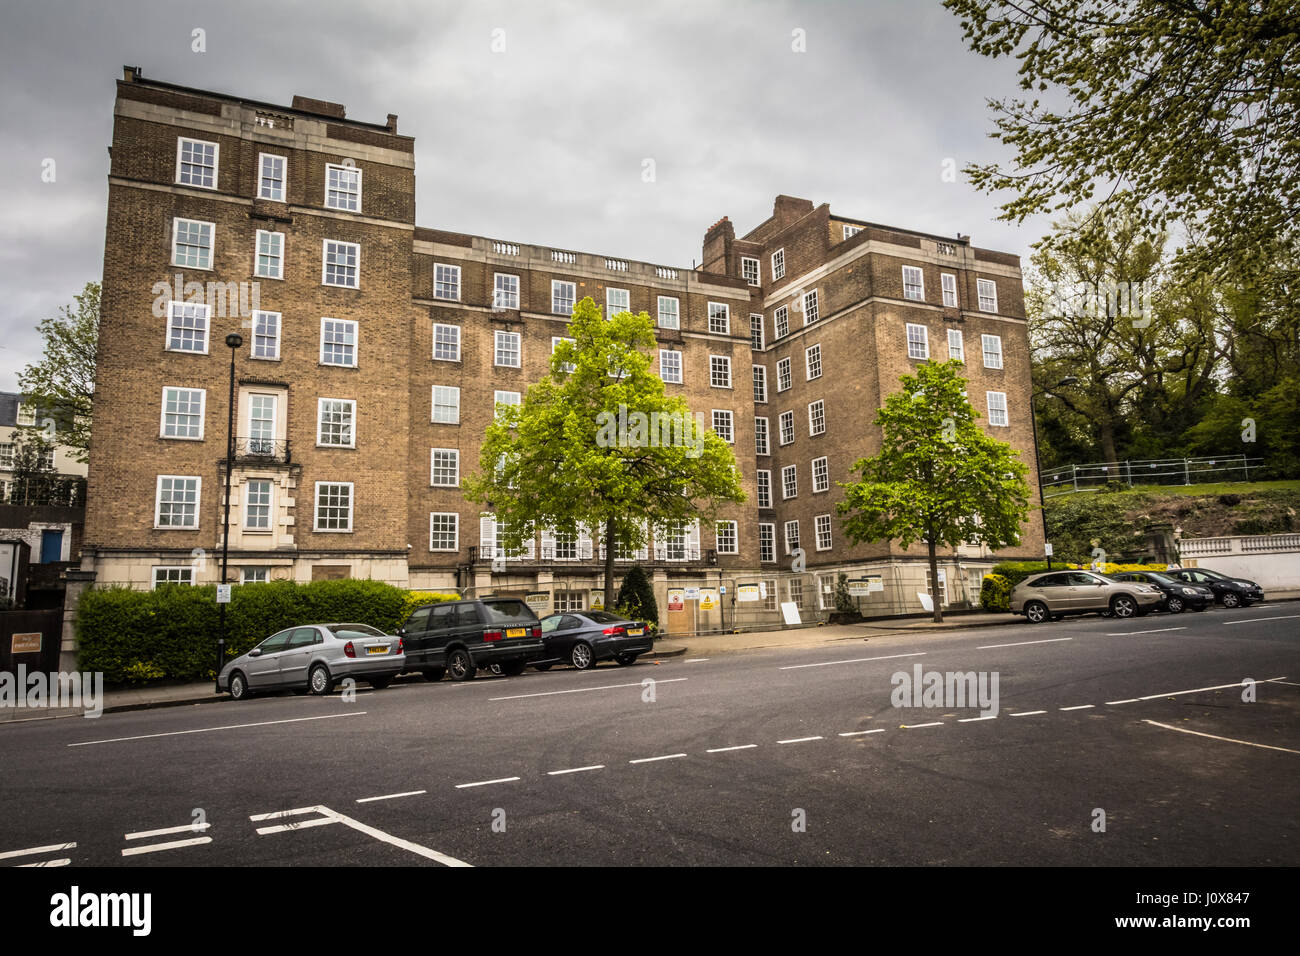 Controversy surrounds the proposed redevelopment of Duke's Lodge mansions in Holland Park by Christian Candy's - Stock Image